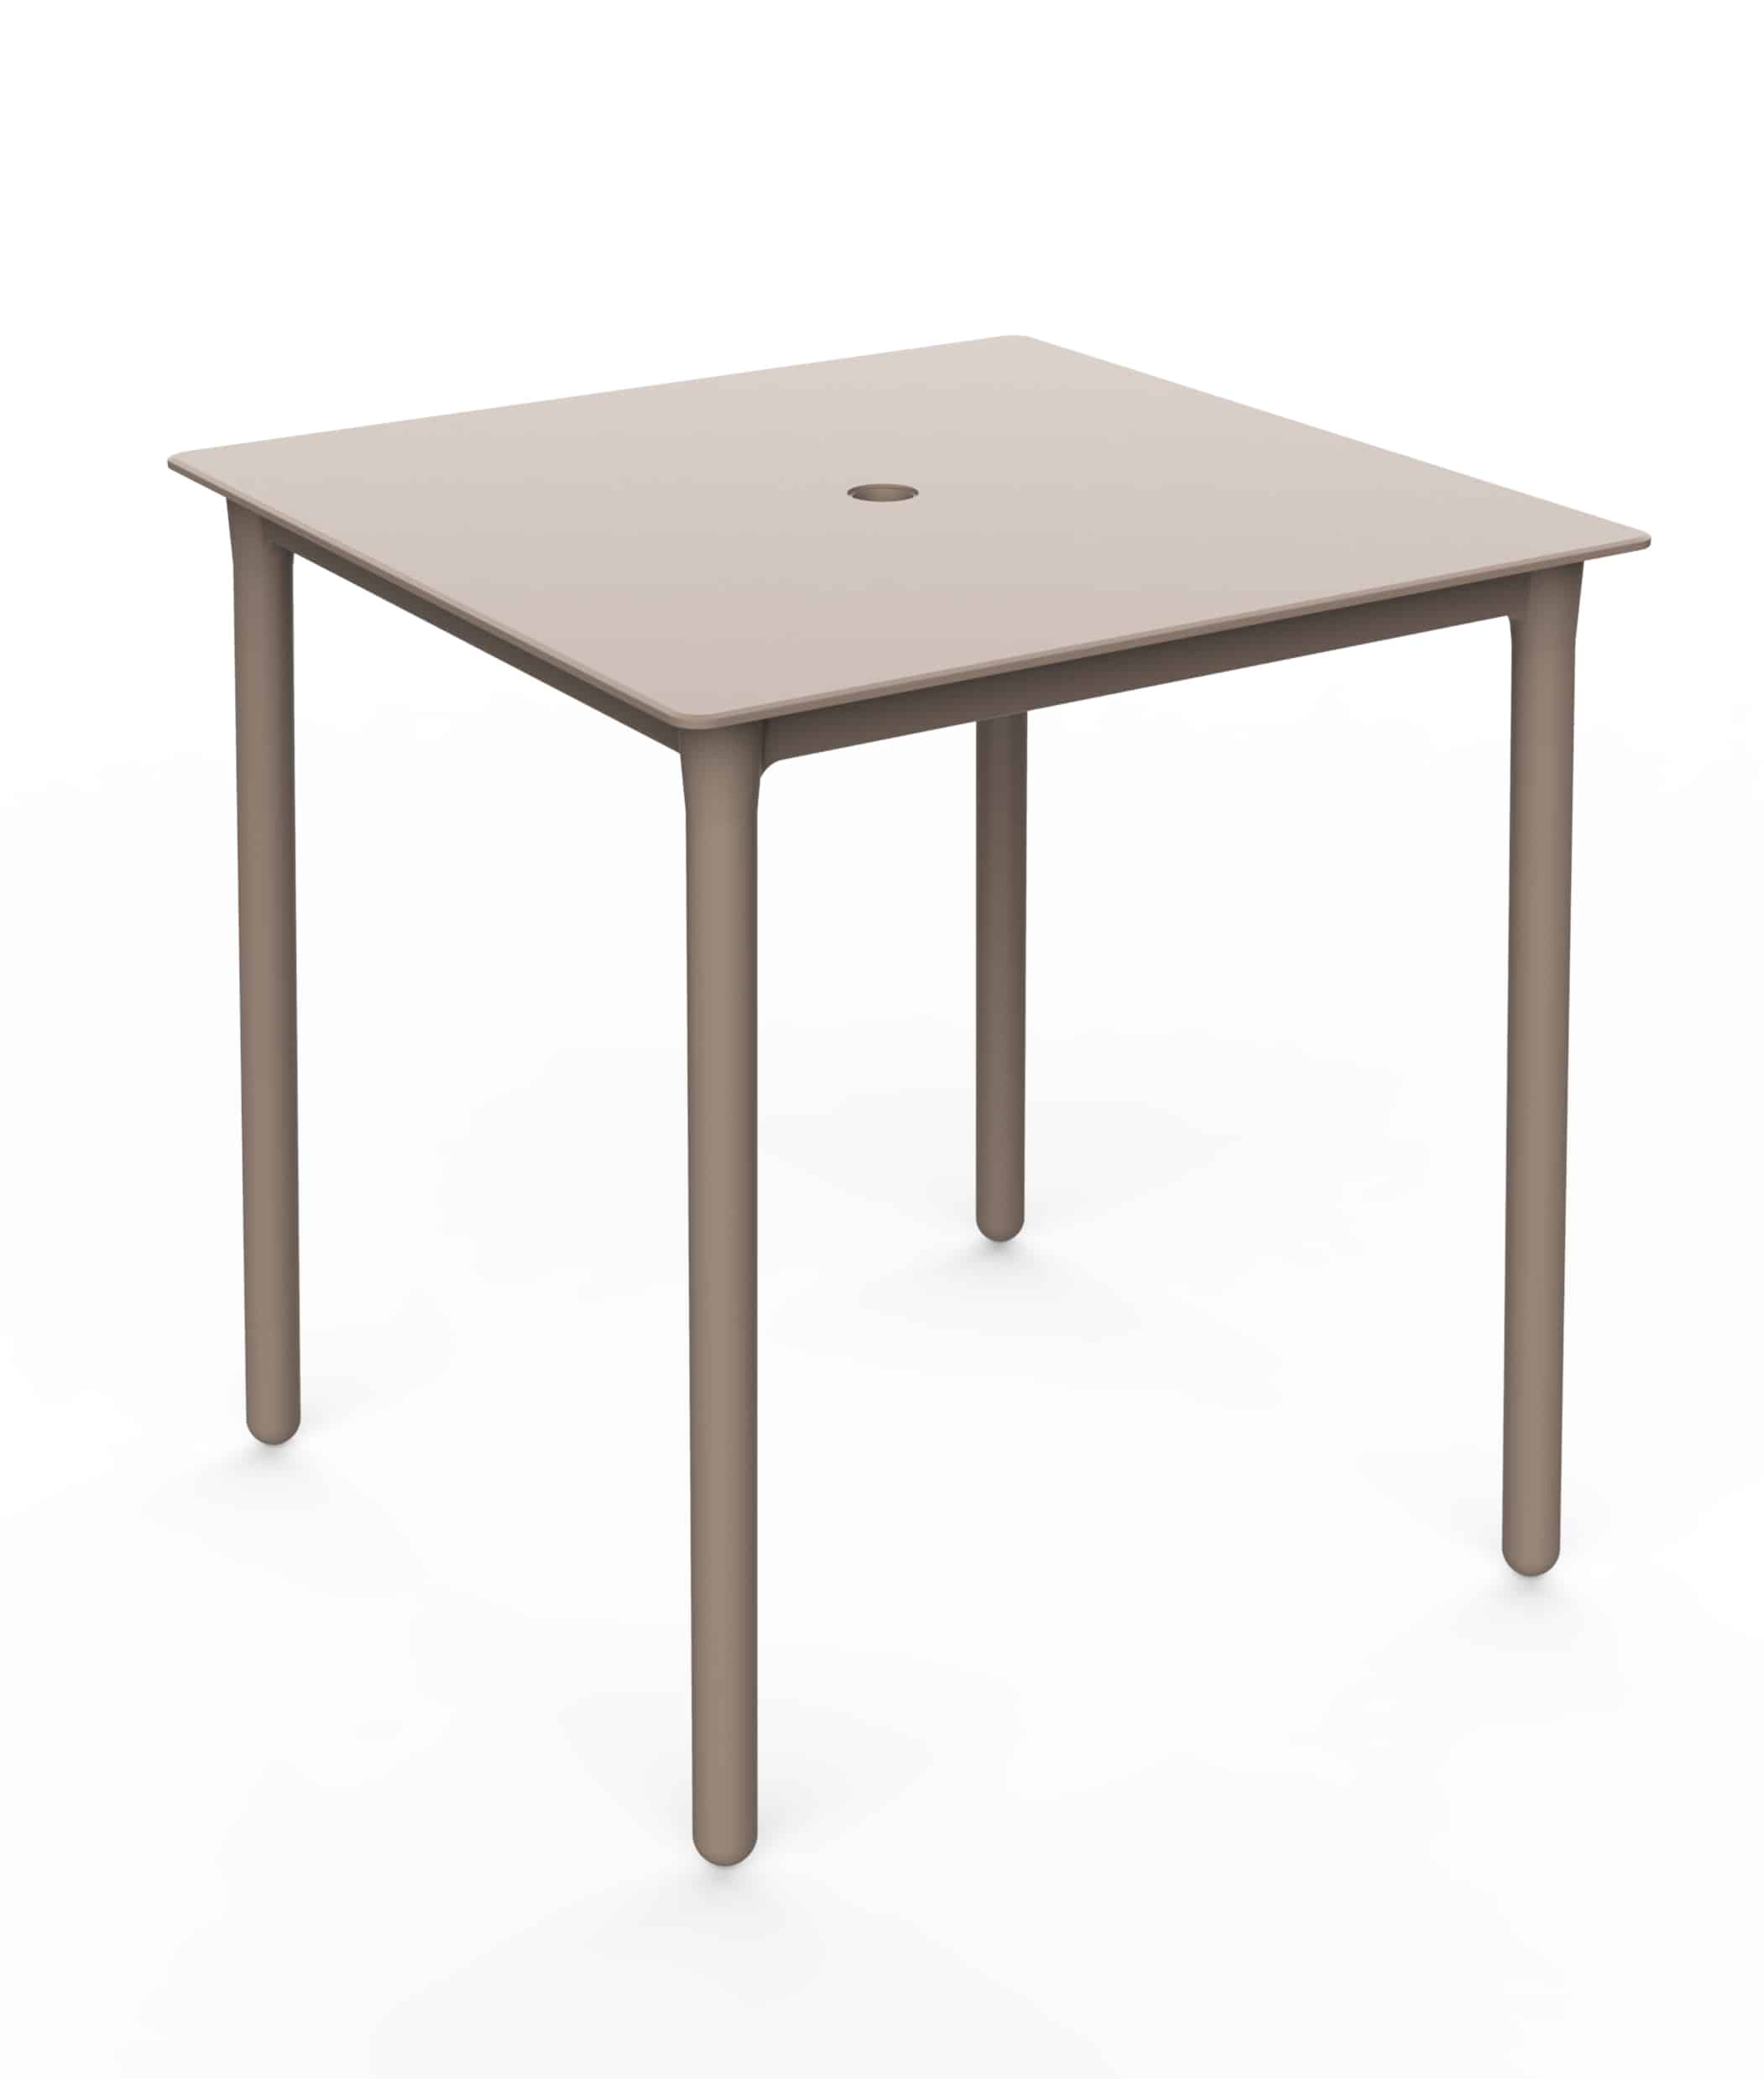 <p>Outdoor Furniture Contemporary Collection – Flores Outdoor Dining Table – Sand.</p> <p> </p> <p>Table for indoor and outdoor use combinable with a parasol of your choice.</p> <p> </p> <p>Adaptable to any environment being designed by architects. Capturing essential features such as elegance lightness, functionality, ergonomics and care for the environment.</p>